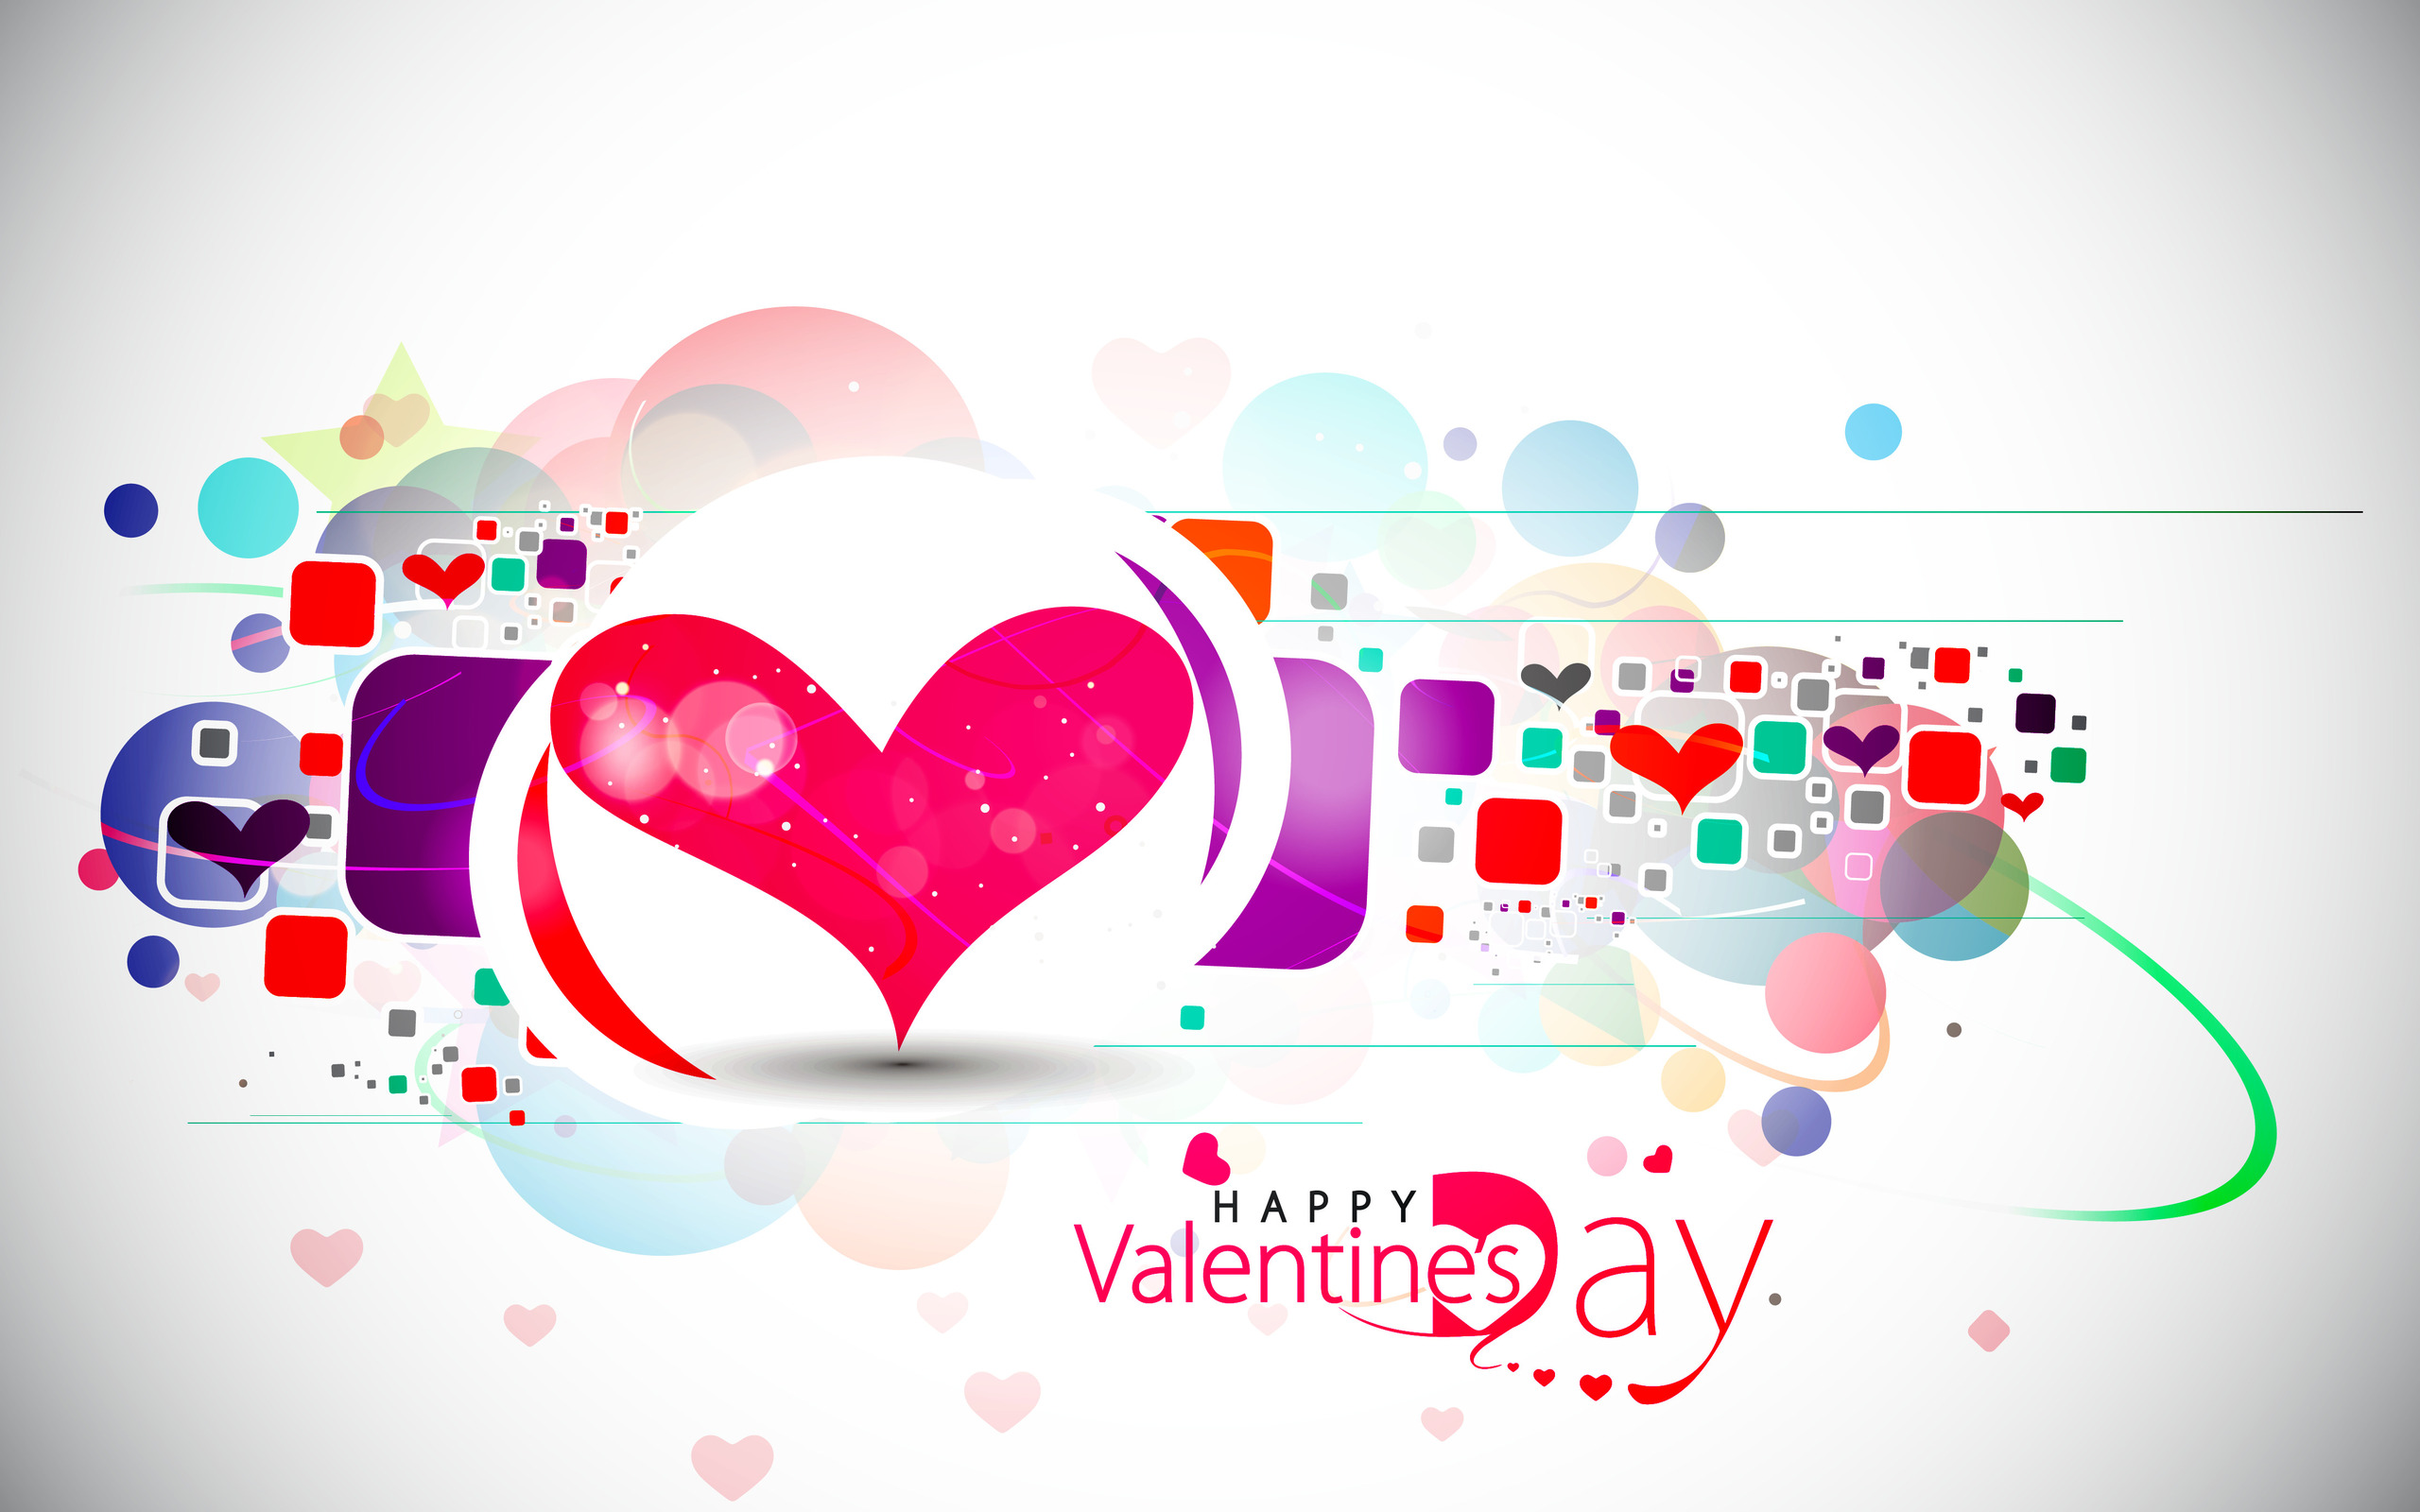 Valentine's Day Images & Pictures